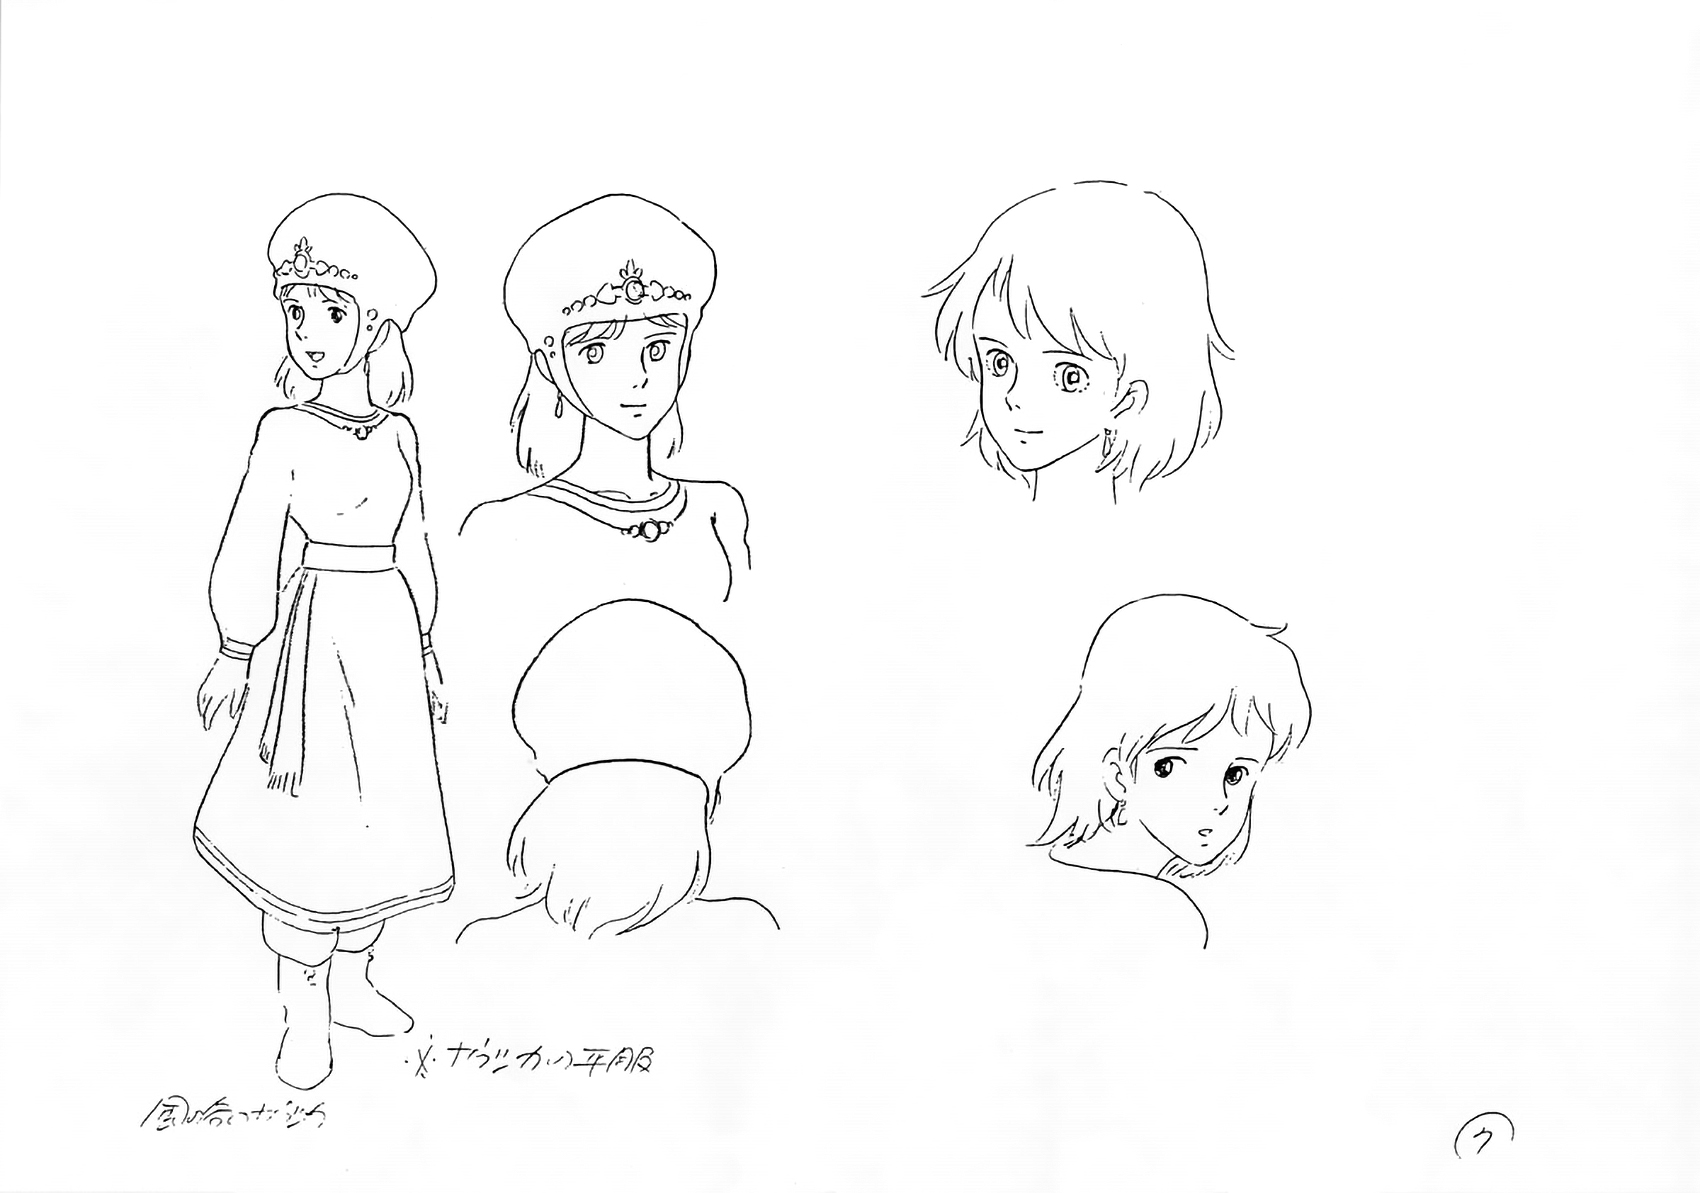 Art of the Nausicaa of the Valley of Wind A - 8.jpg